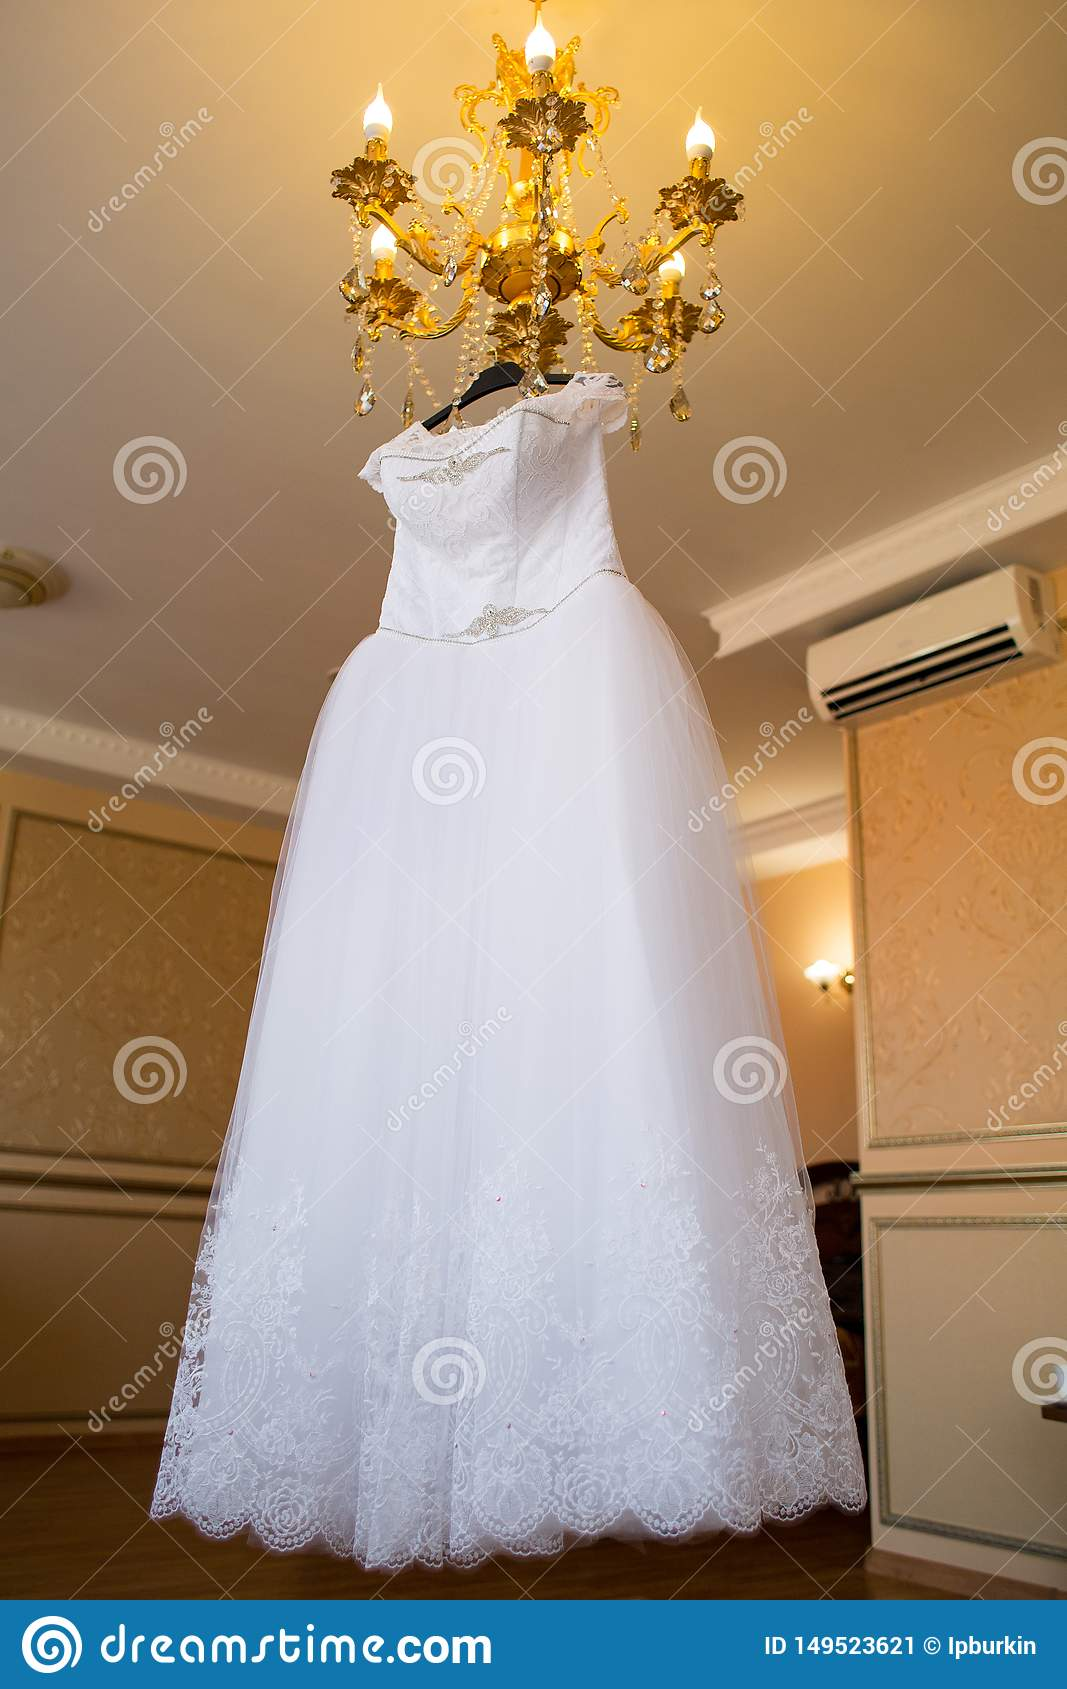 Wedding dress hanging on the chandelier. bride accessories. charges of the bride. bride`s morning